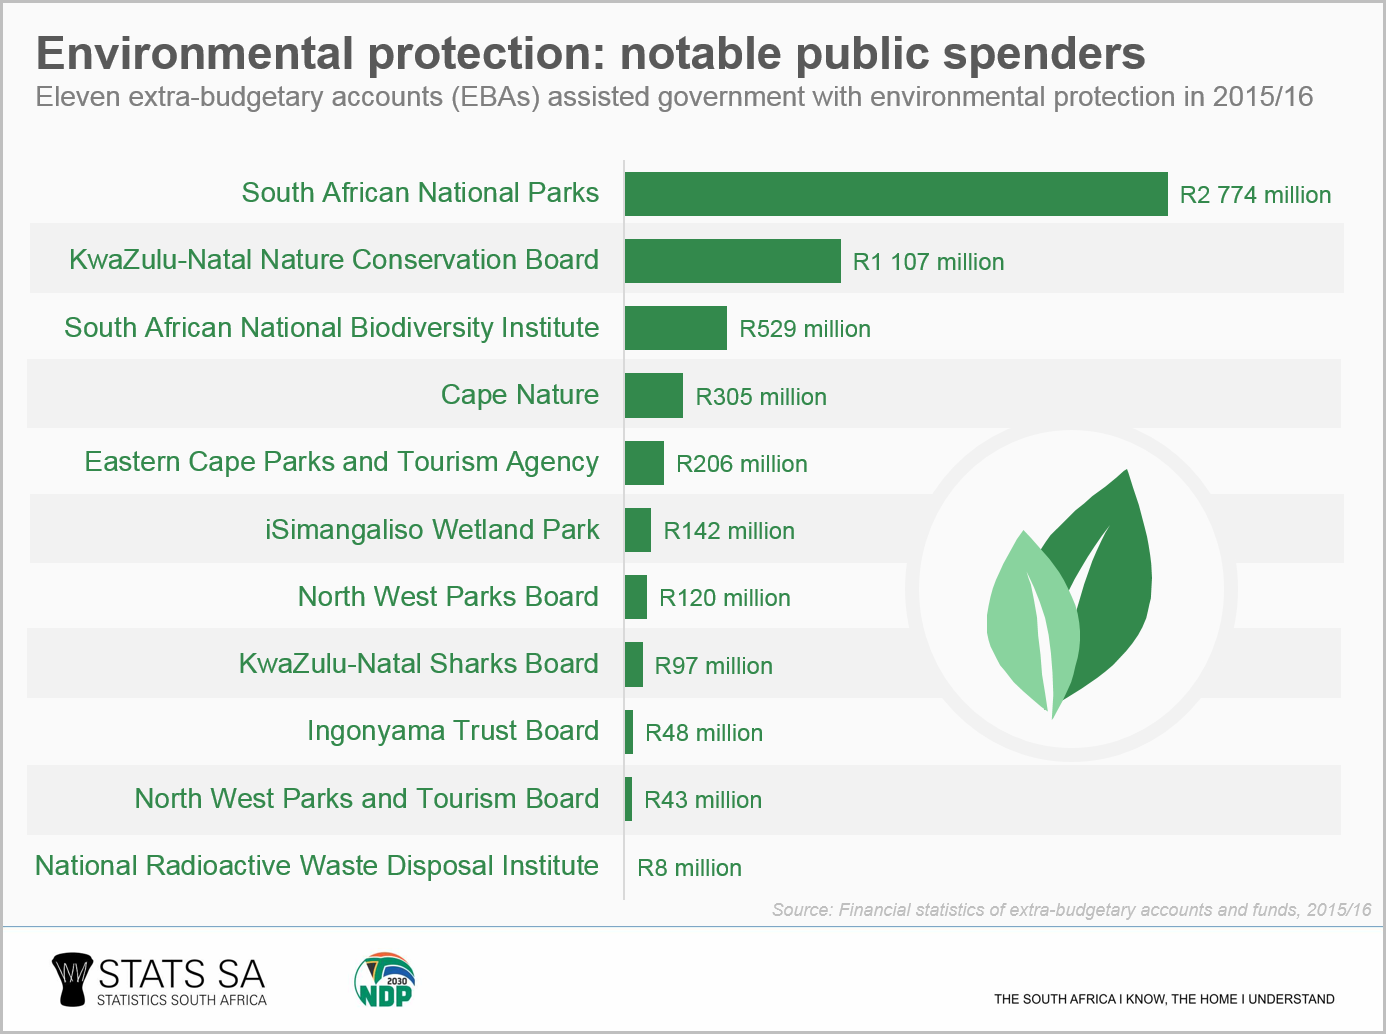 Government Spending How Much Goes To Environment Protection